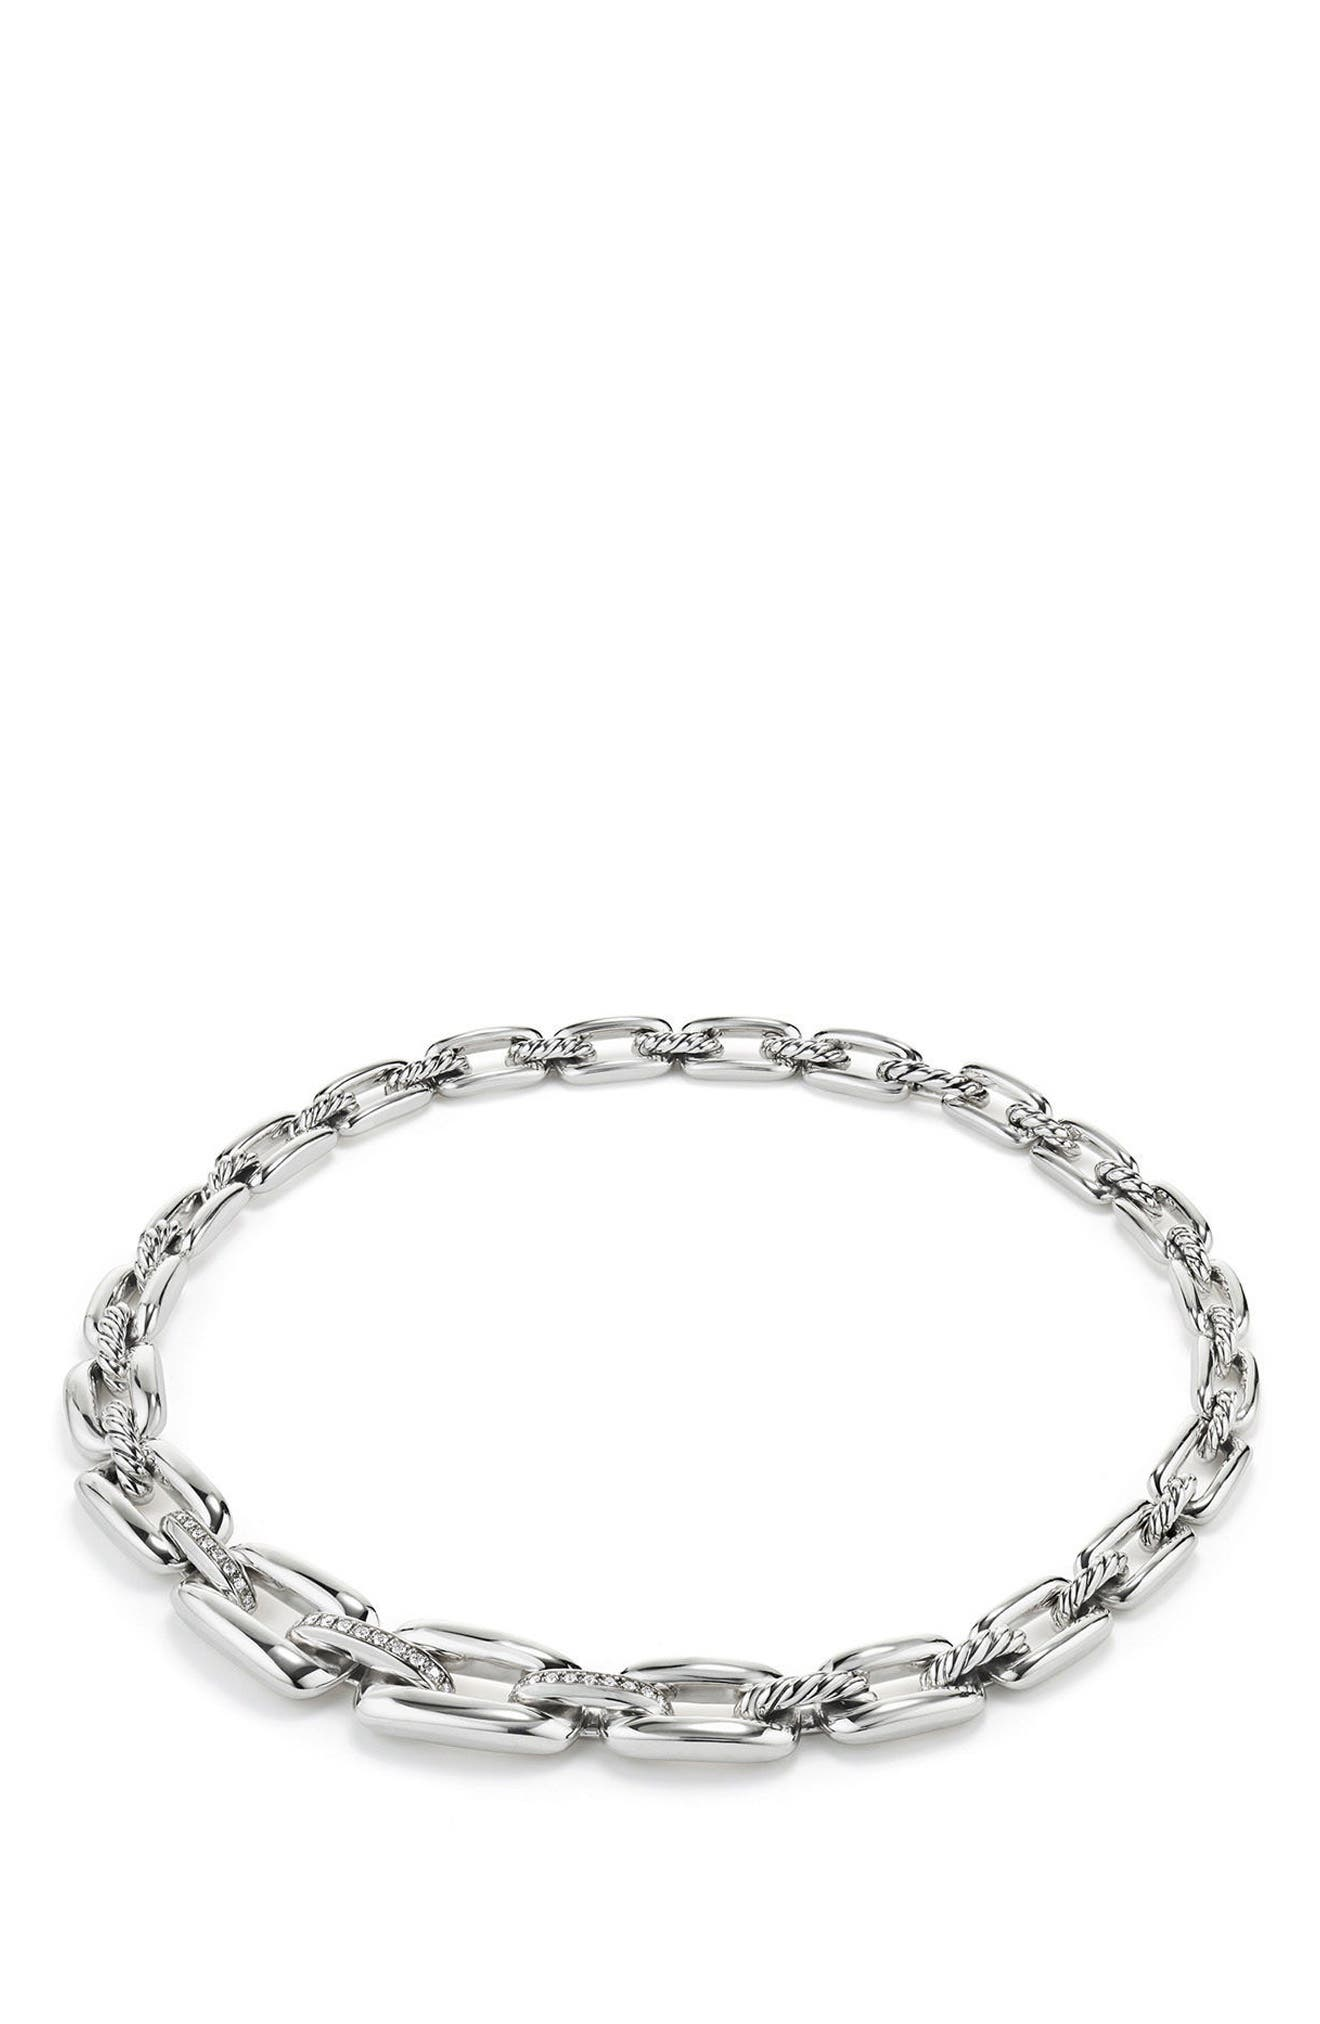 Wellesley Short Chain Necklace with Diamonds,                         Main,                         color, Silver